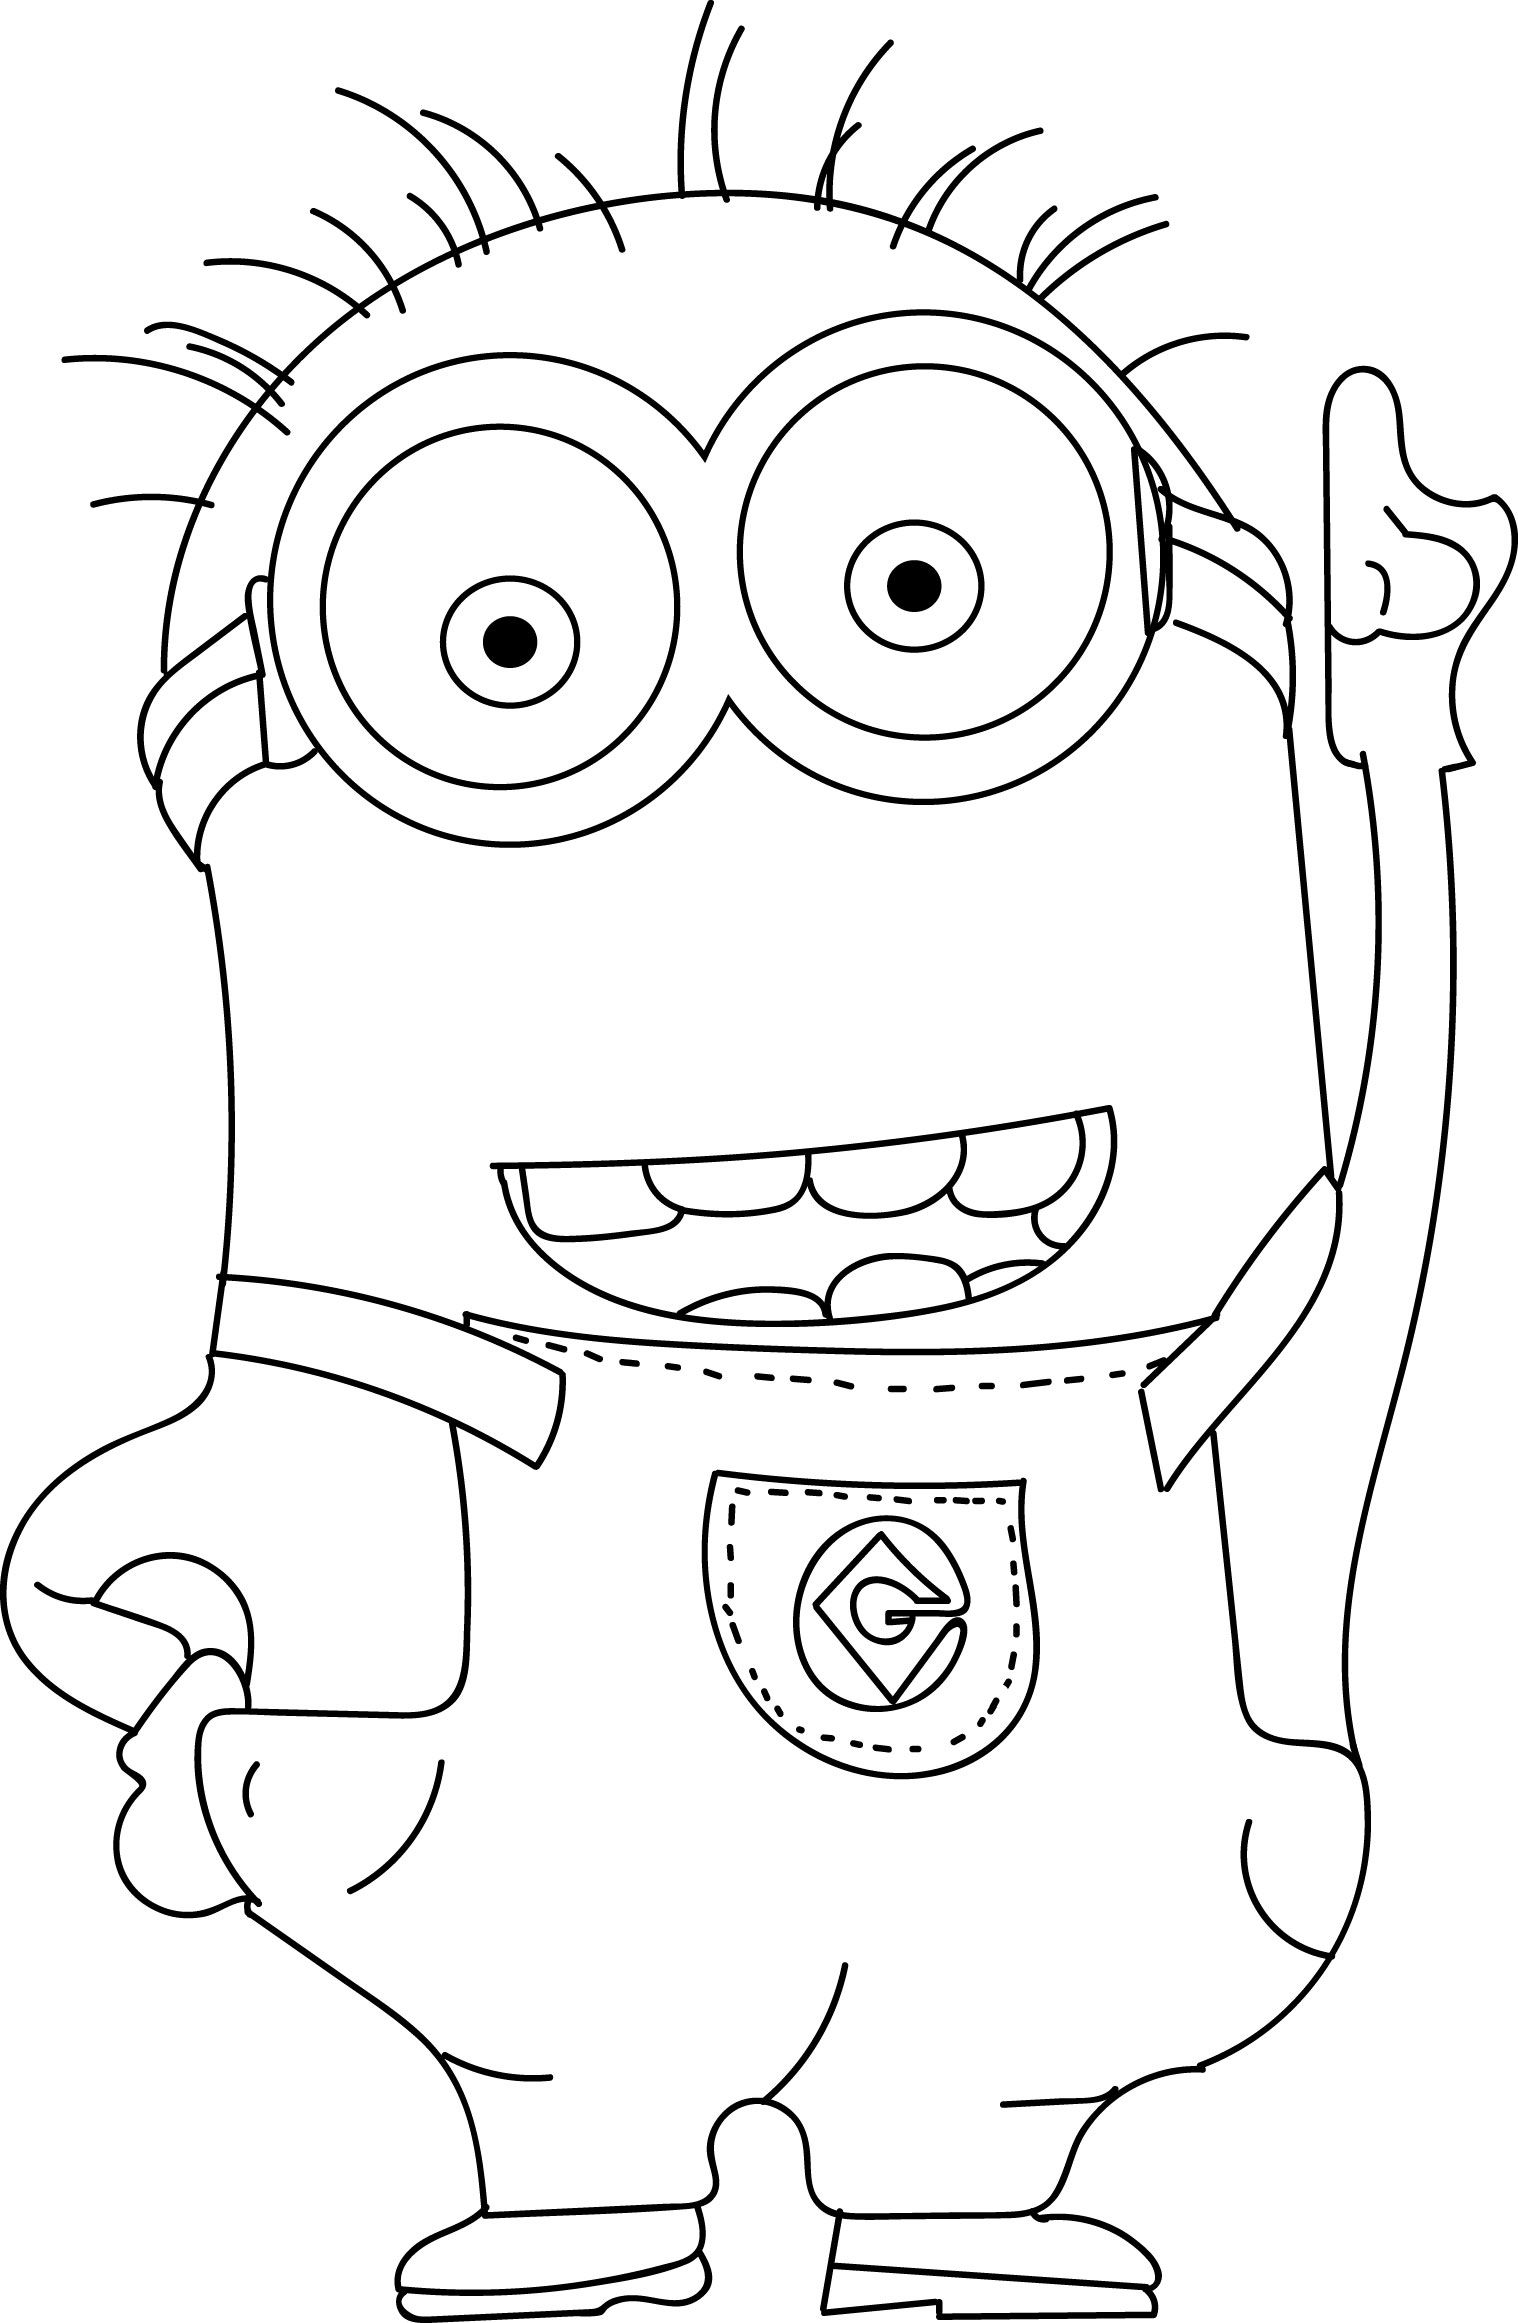 free despicable me coloring pages despicable me coloring pages free printable coloring coloring free despicable me pages